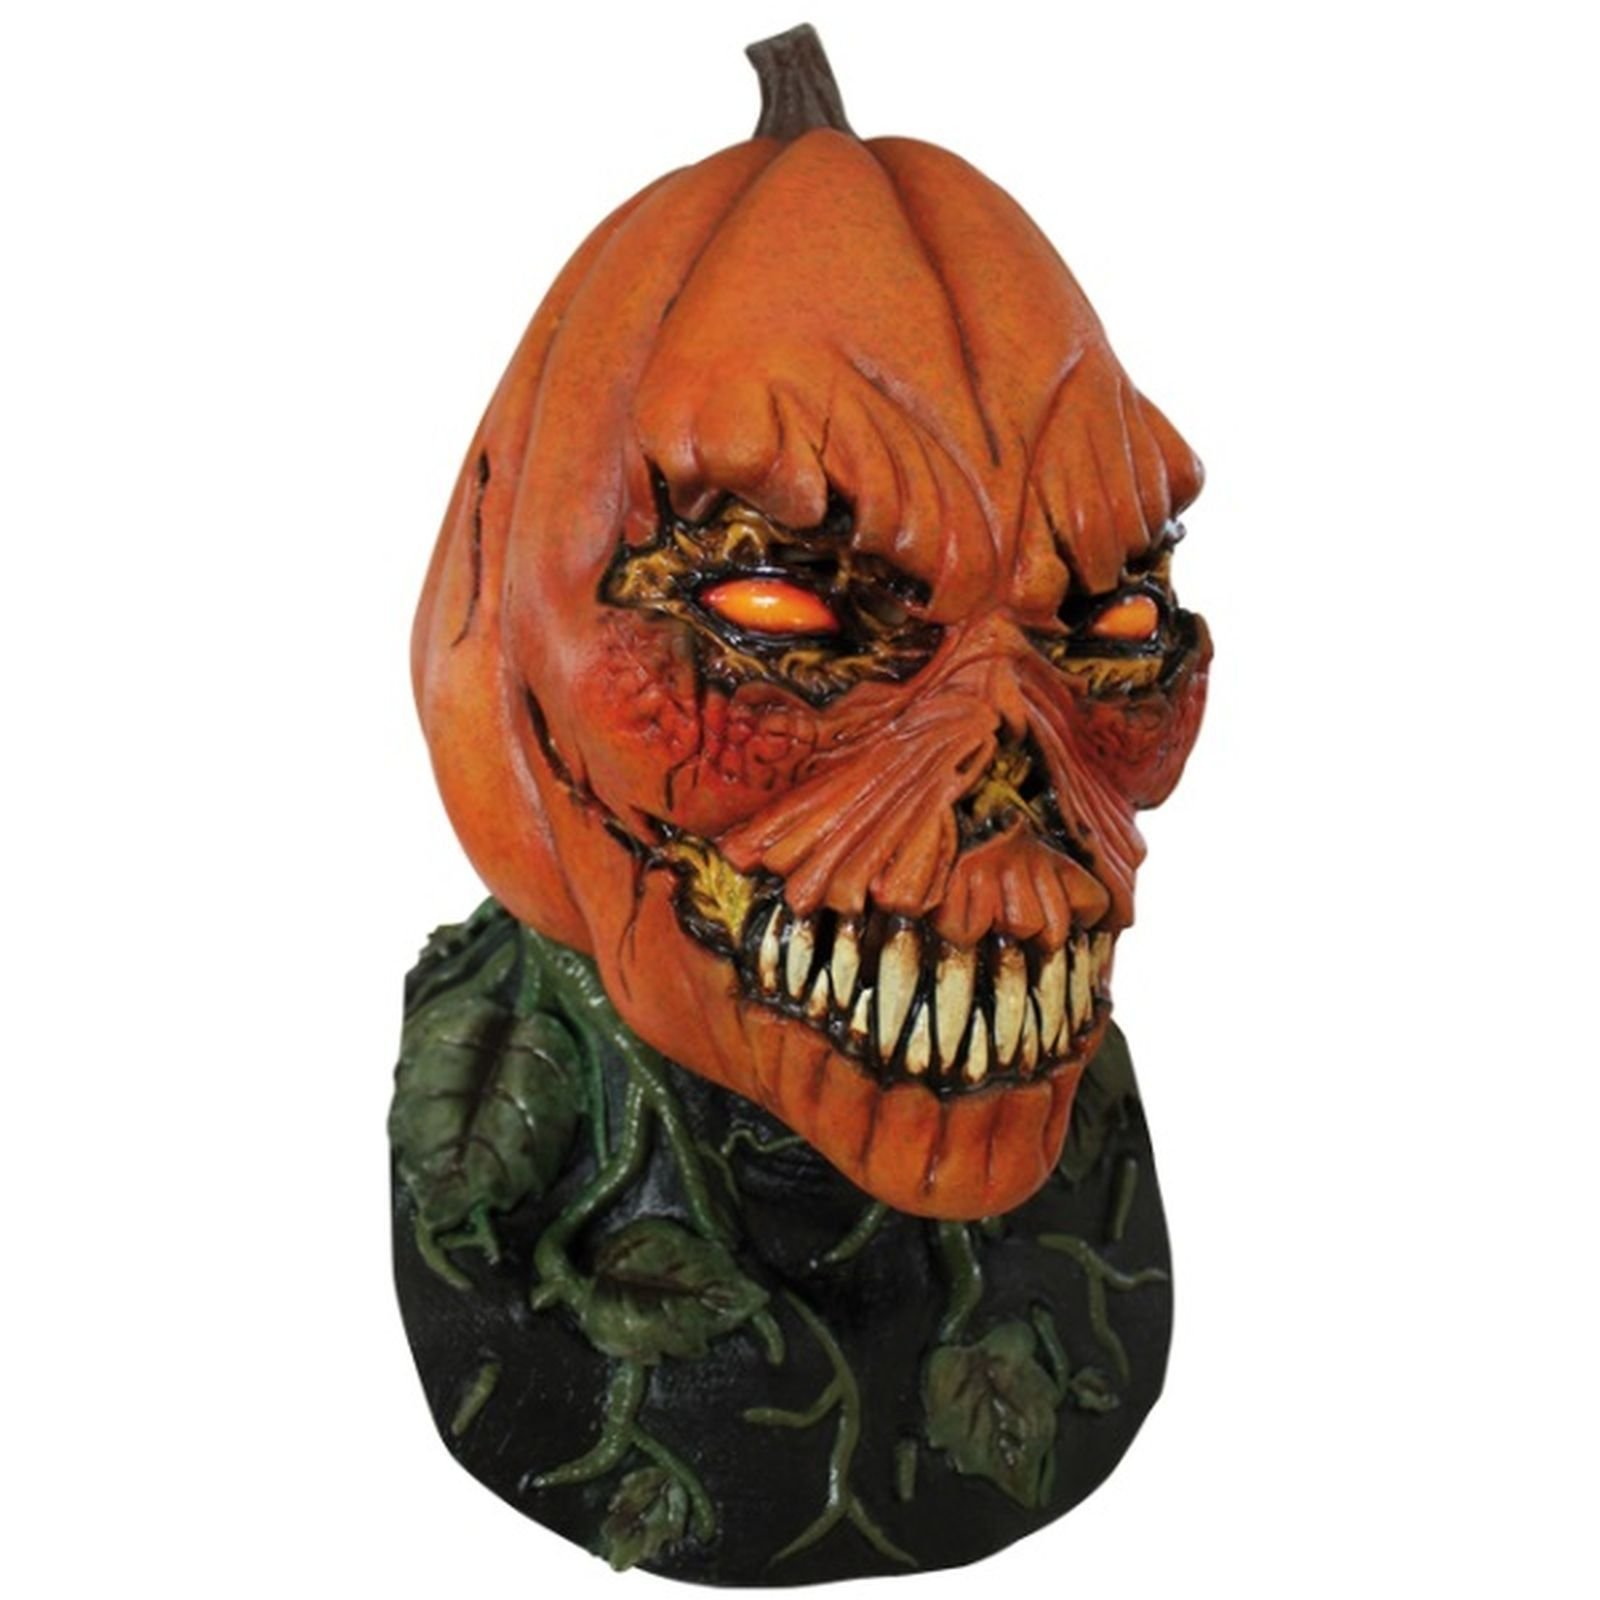 Ghoulish Productions Possesed Pumpkin Adult Mask Evil Pumpkin Jack O Lantern Halloween Scary Spooky